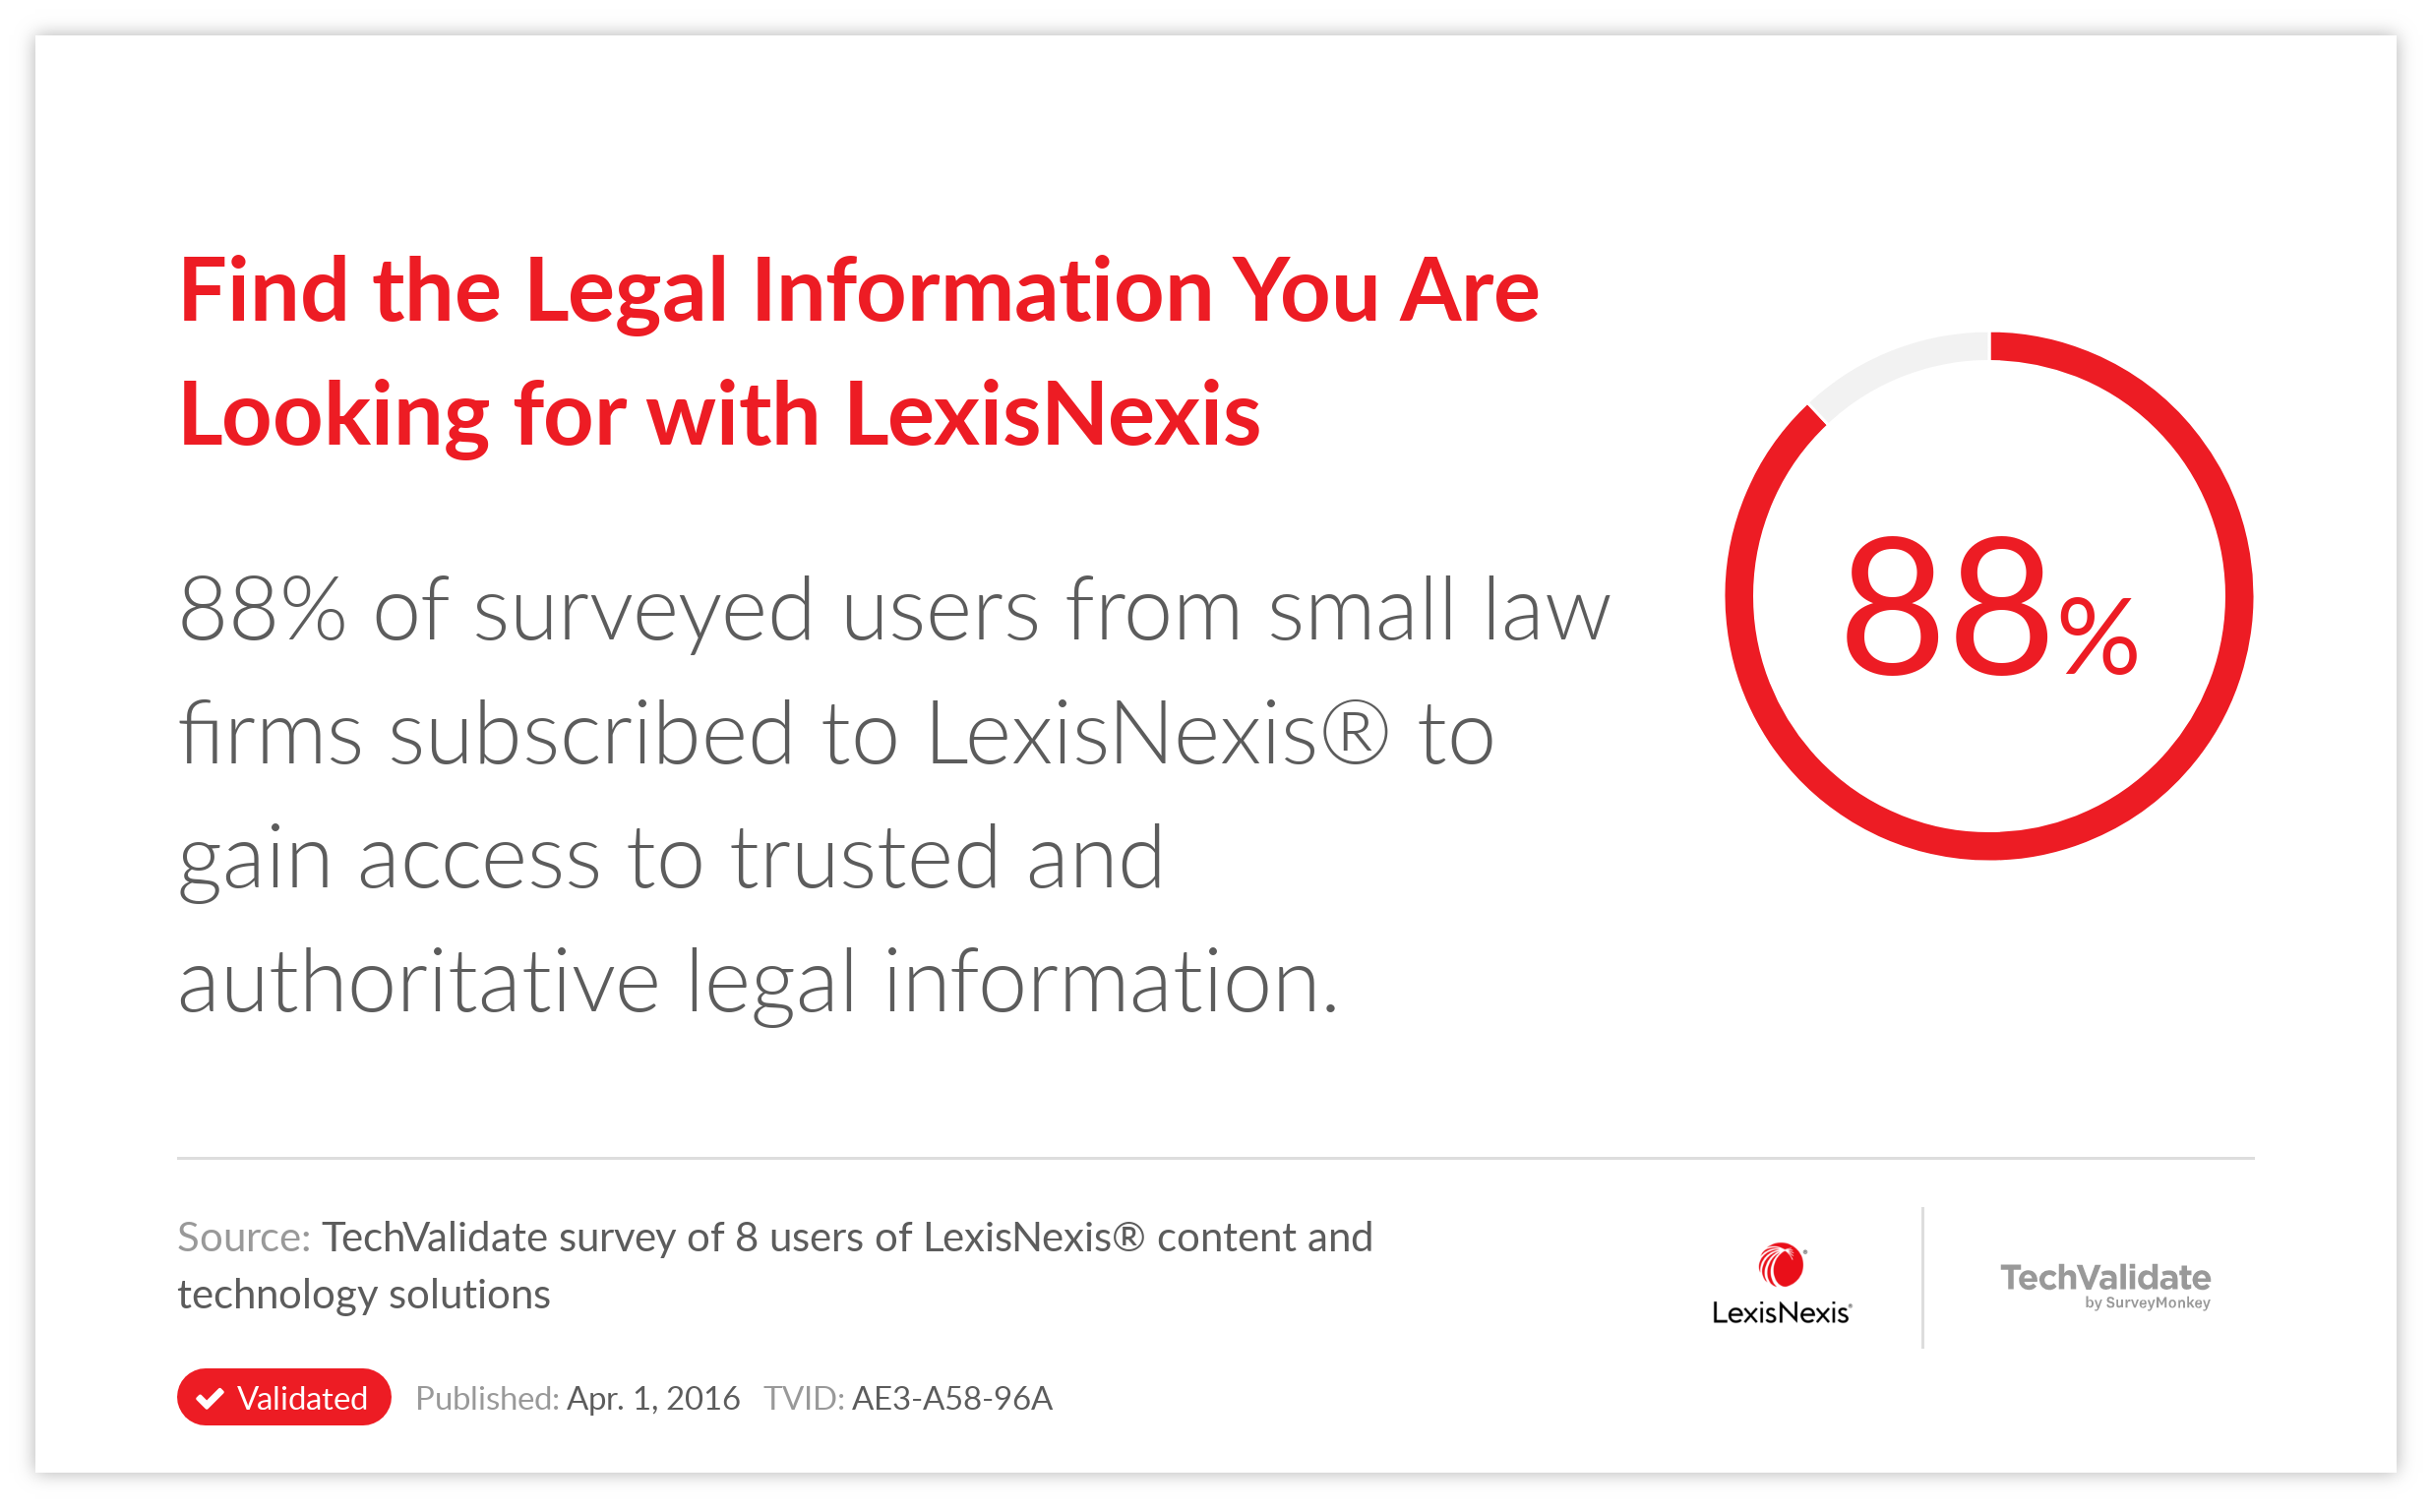 Find the Legal Information You Are Looking for with LexisNexis